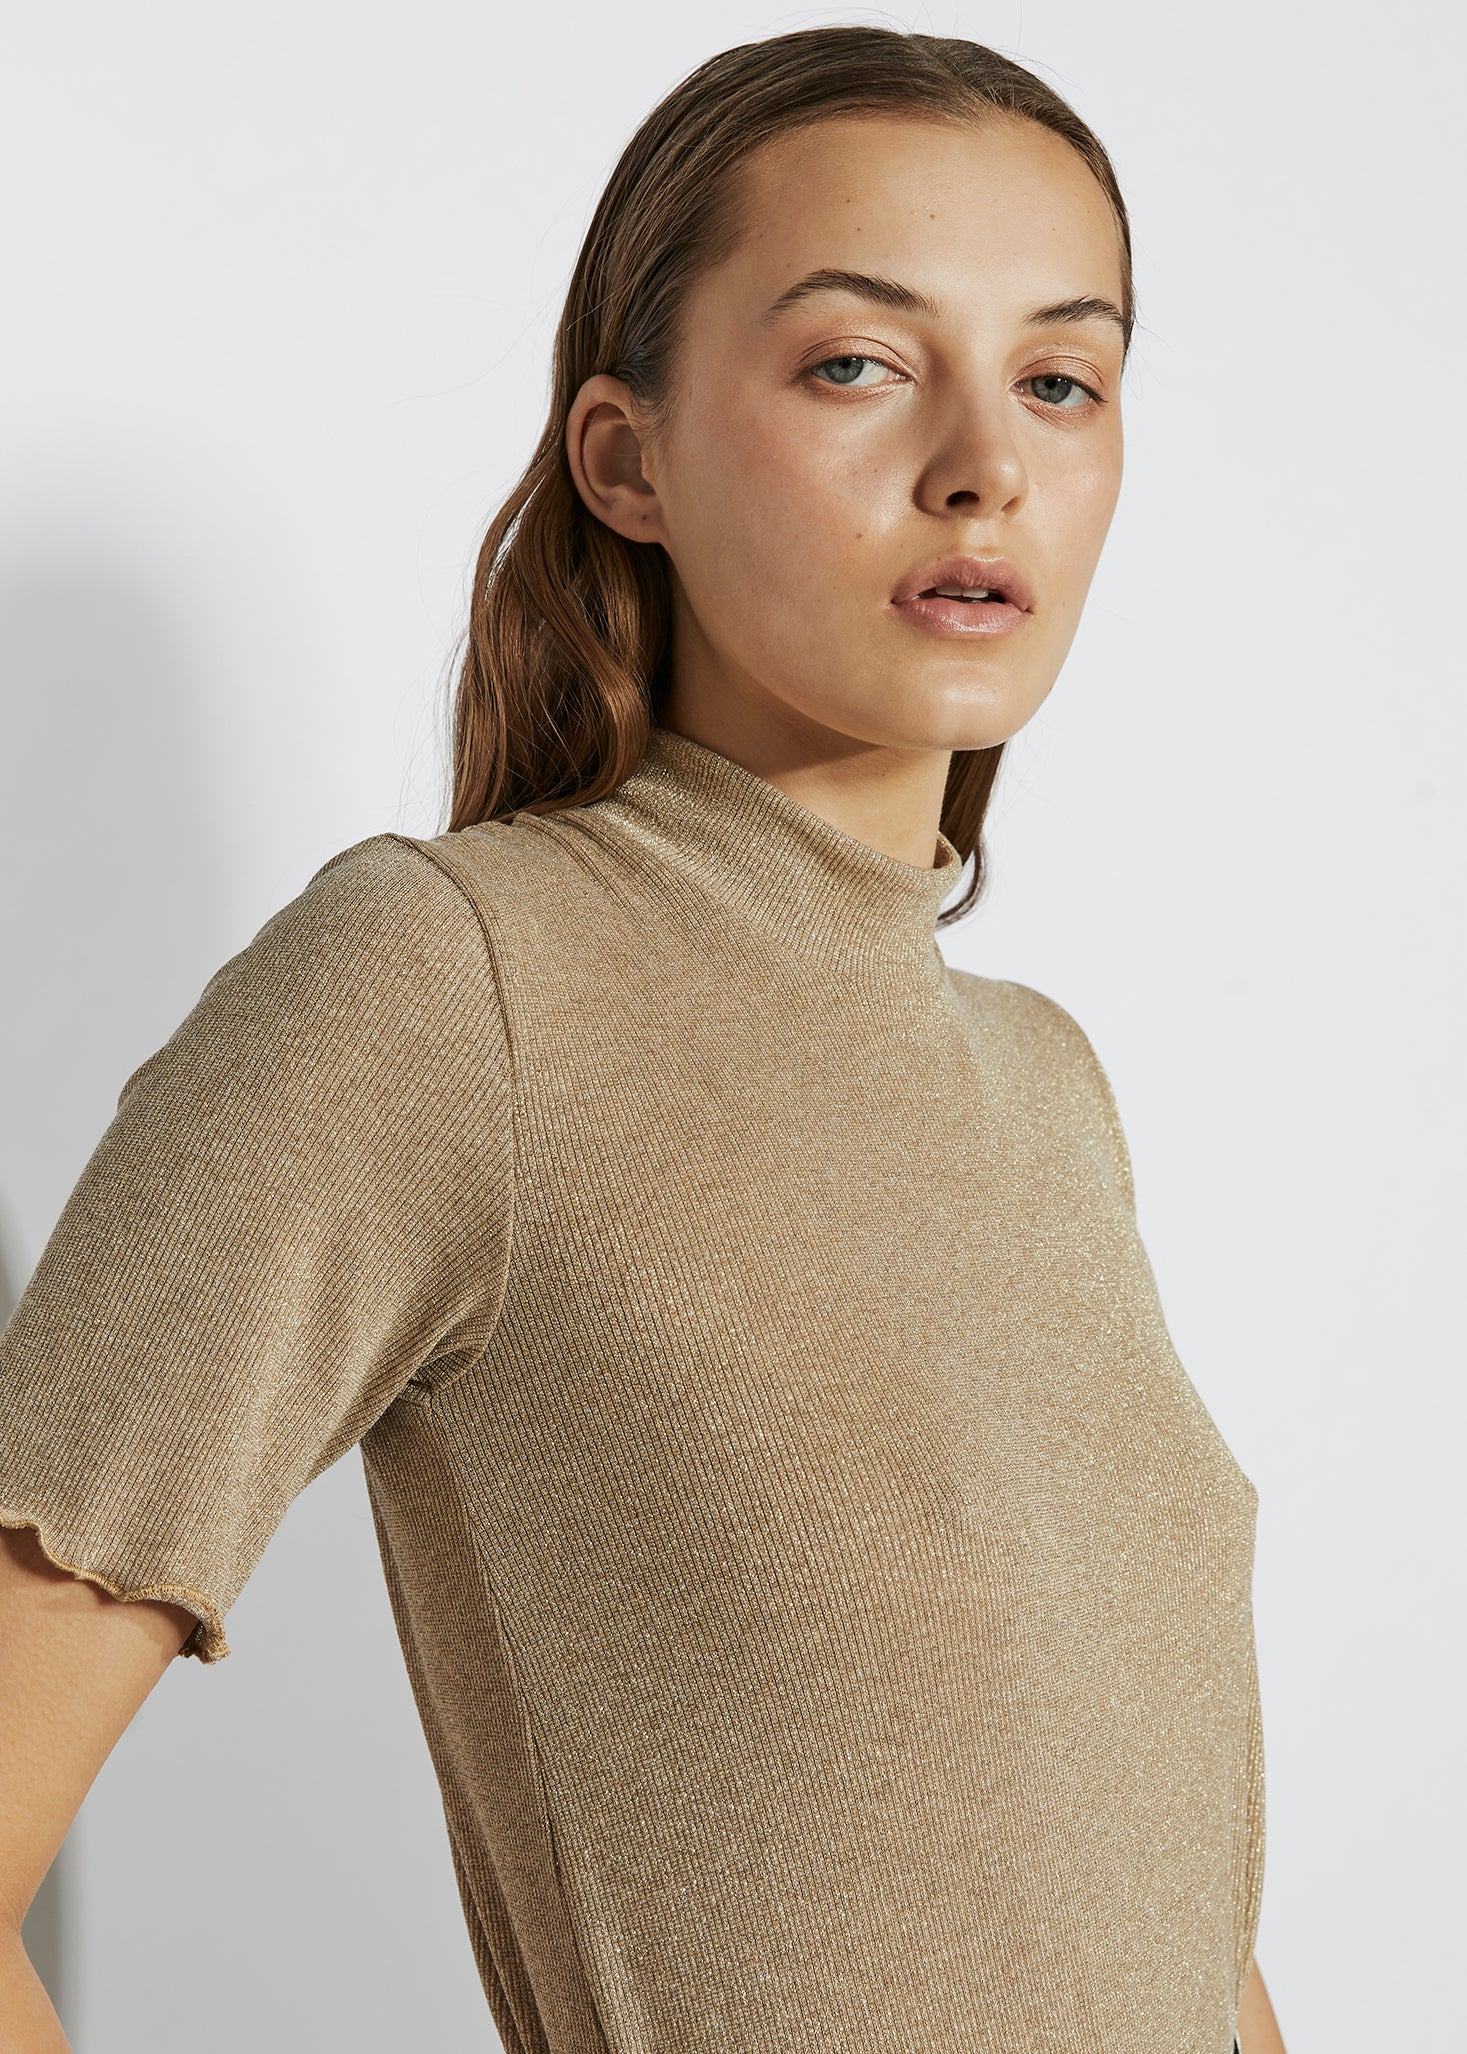 keegan heavy metal look book. Slow handmade fashion. Gold ribbed Tshirt